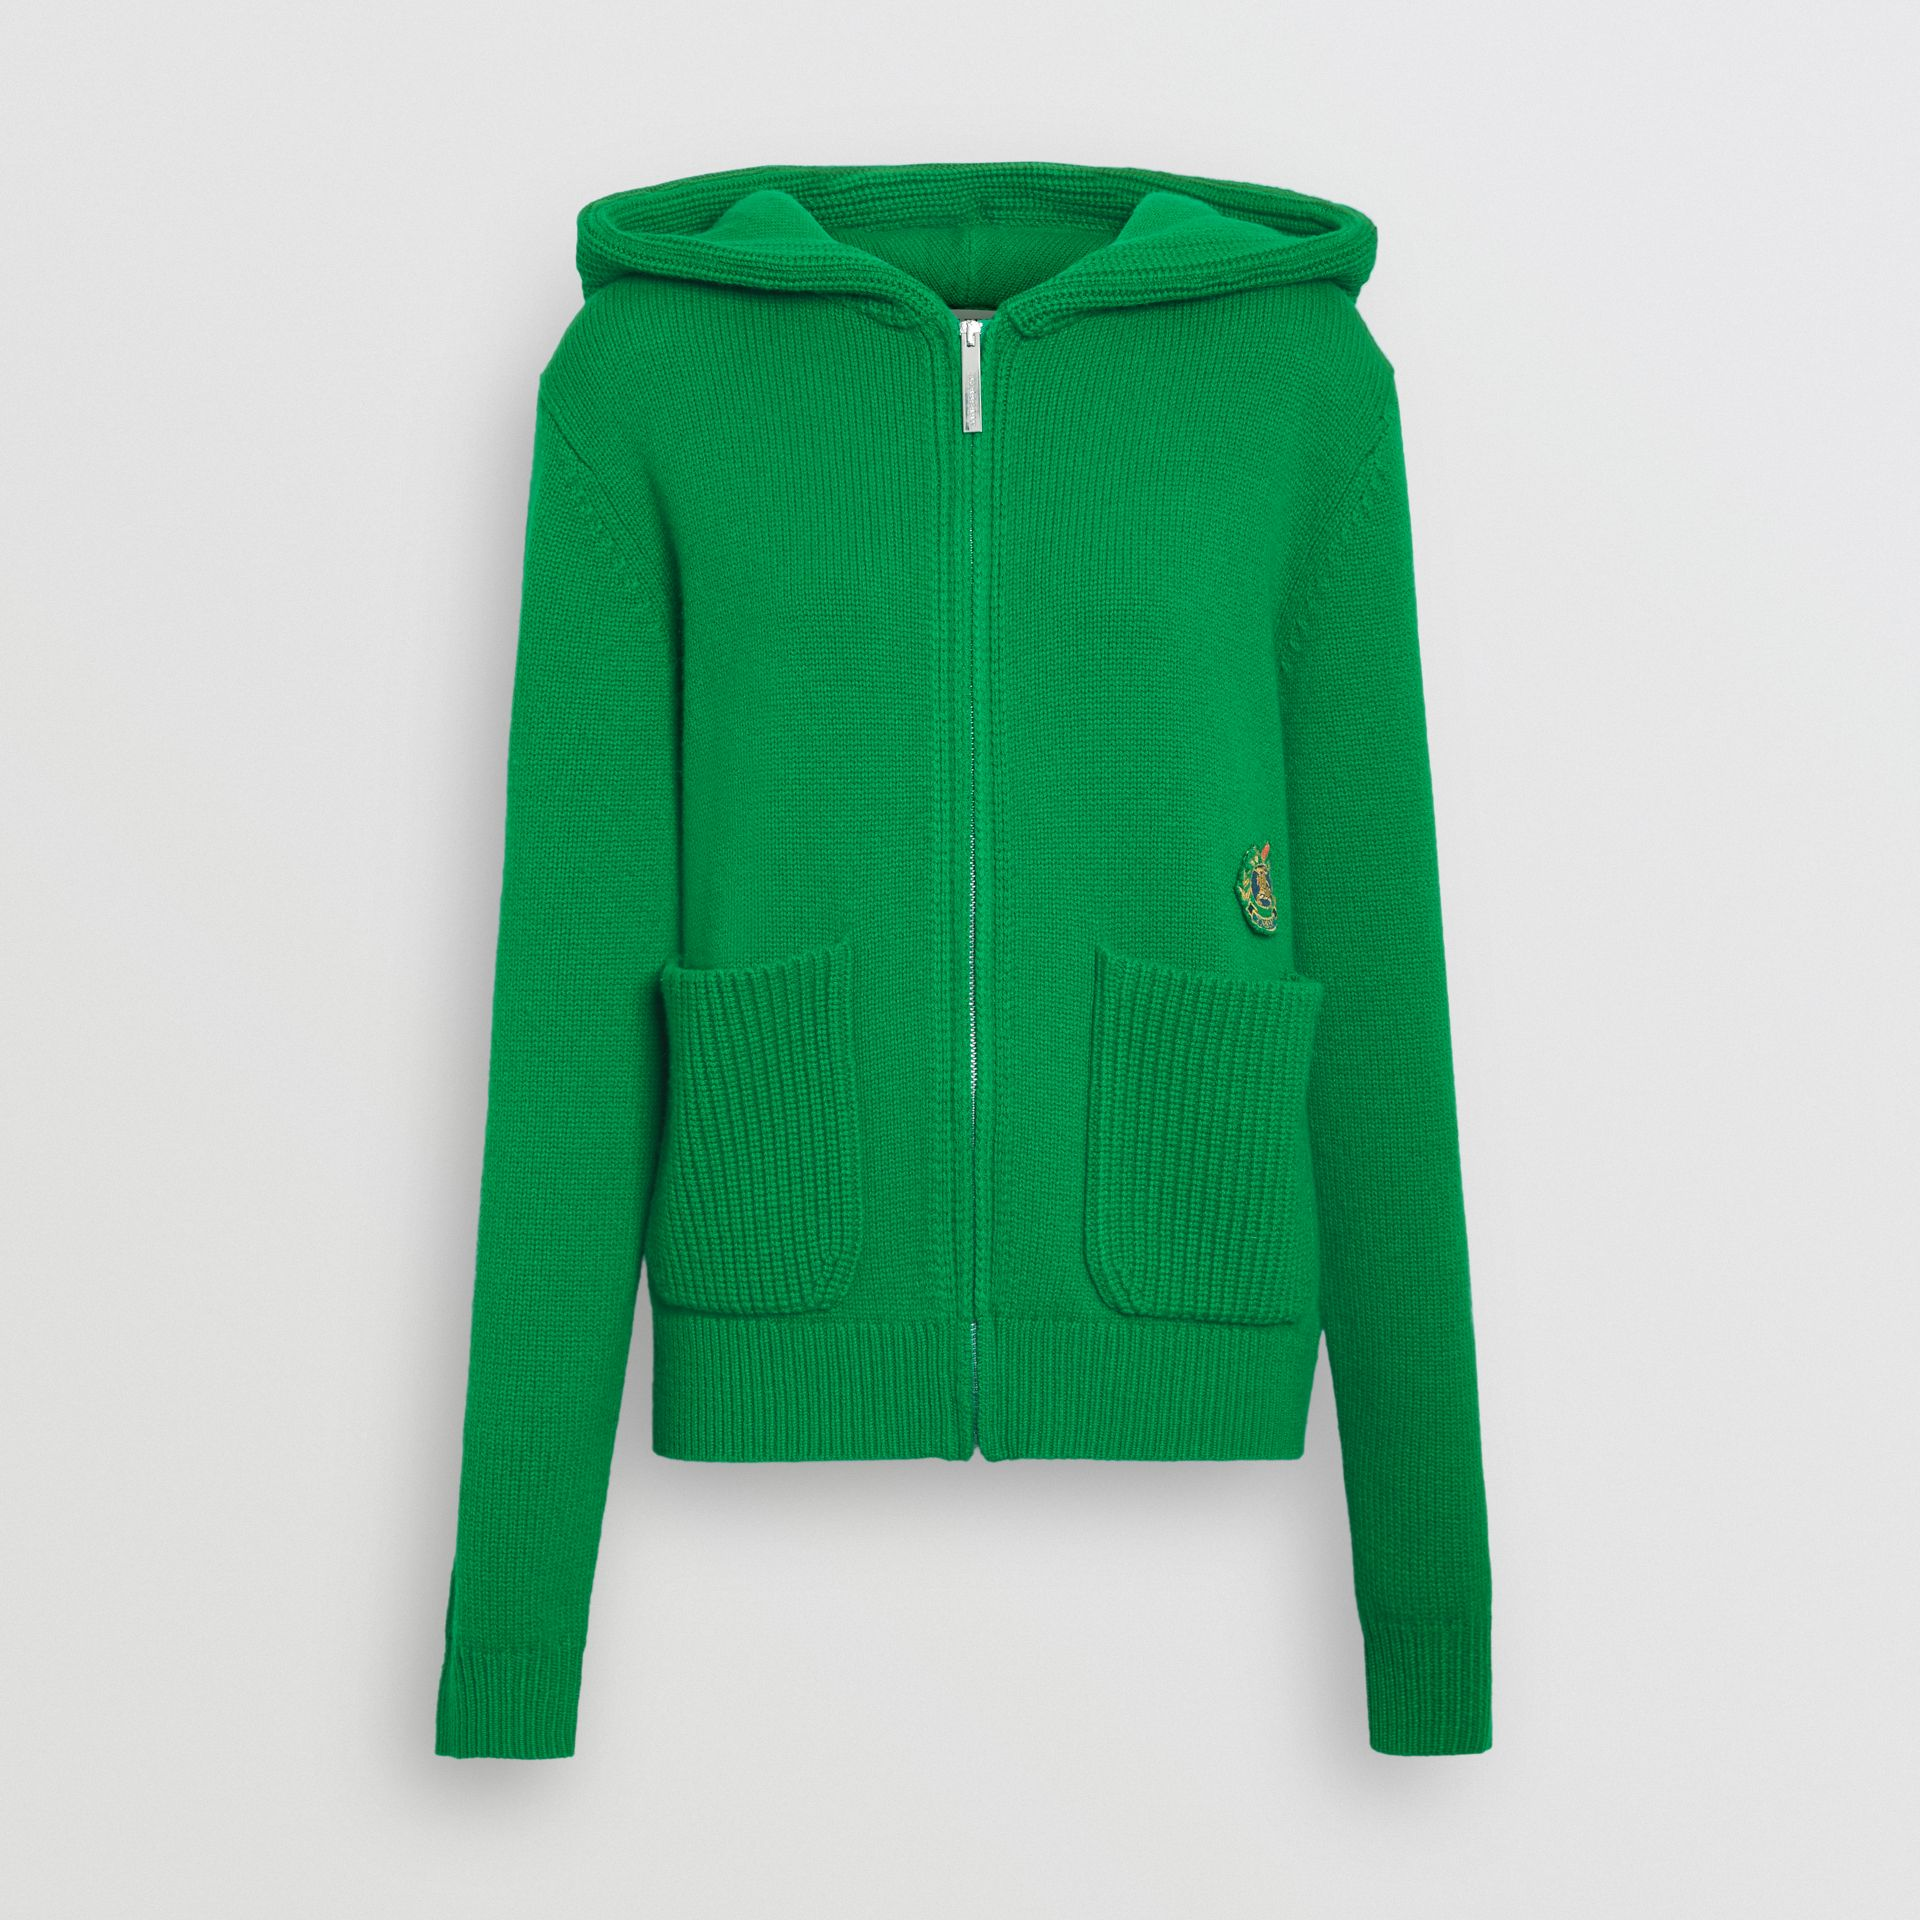 Embroidered Crest Cashmere Hooded Top in Vibrant Green - Women | Burberry Australia - gallery image 3